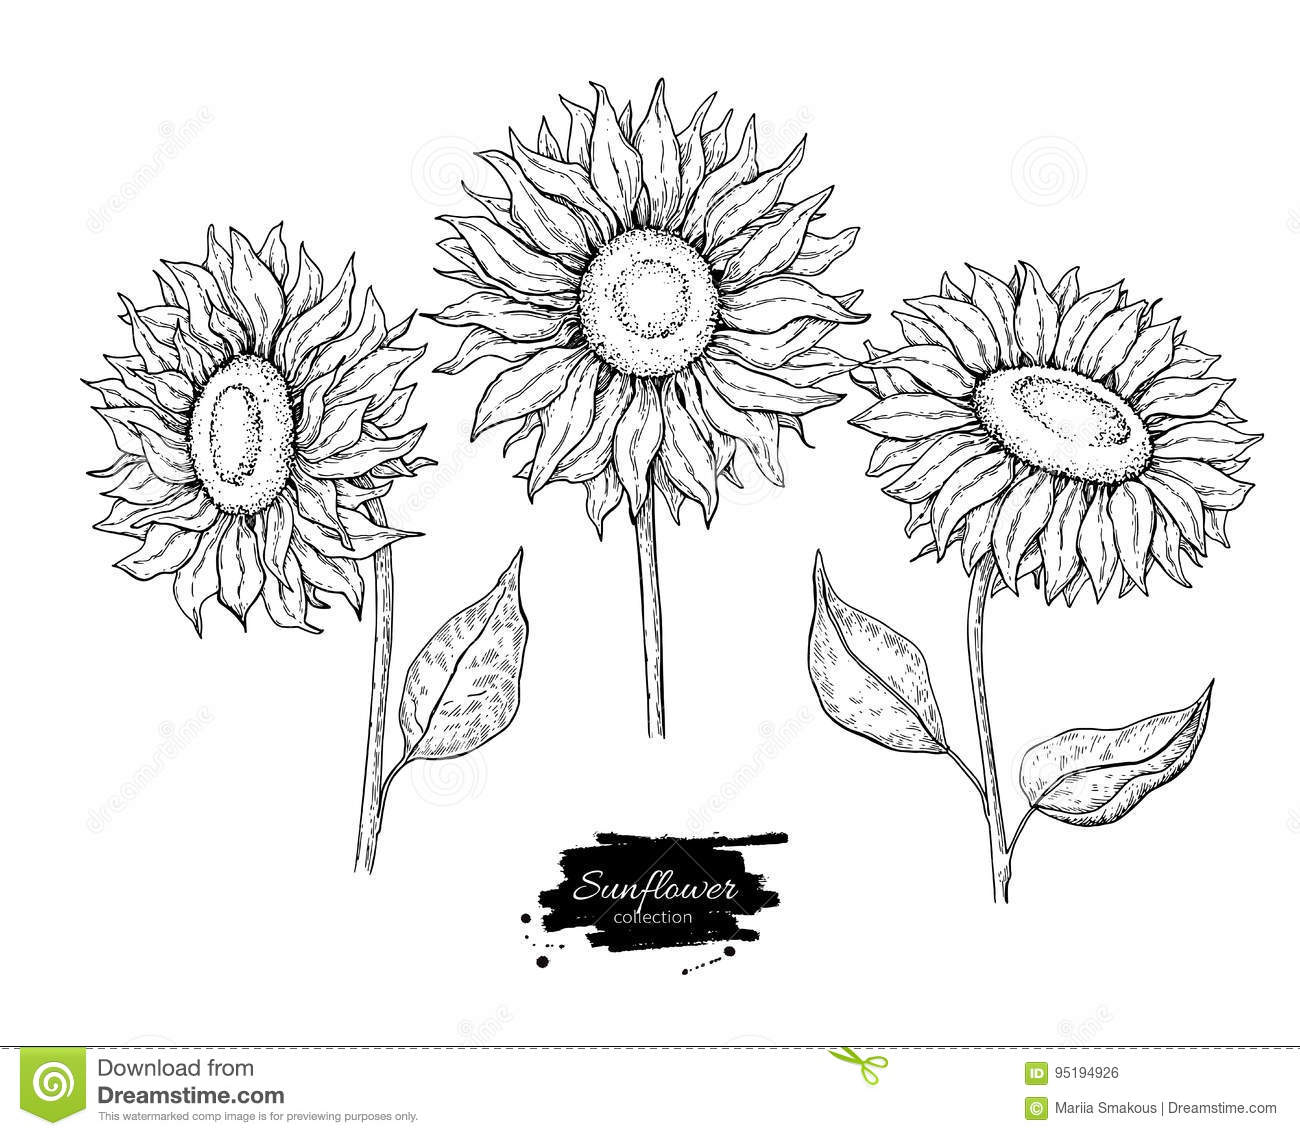 Sunflower Flower Vector Drawing Set. Hand Drawn Illustration ... for Clipart Sunflower Black And White  239wja